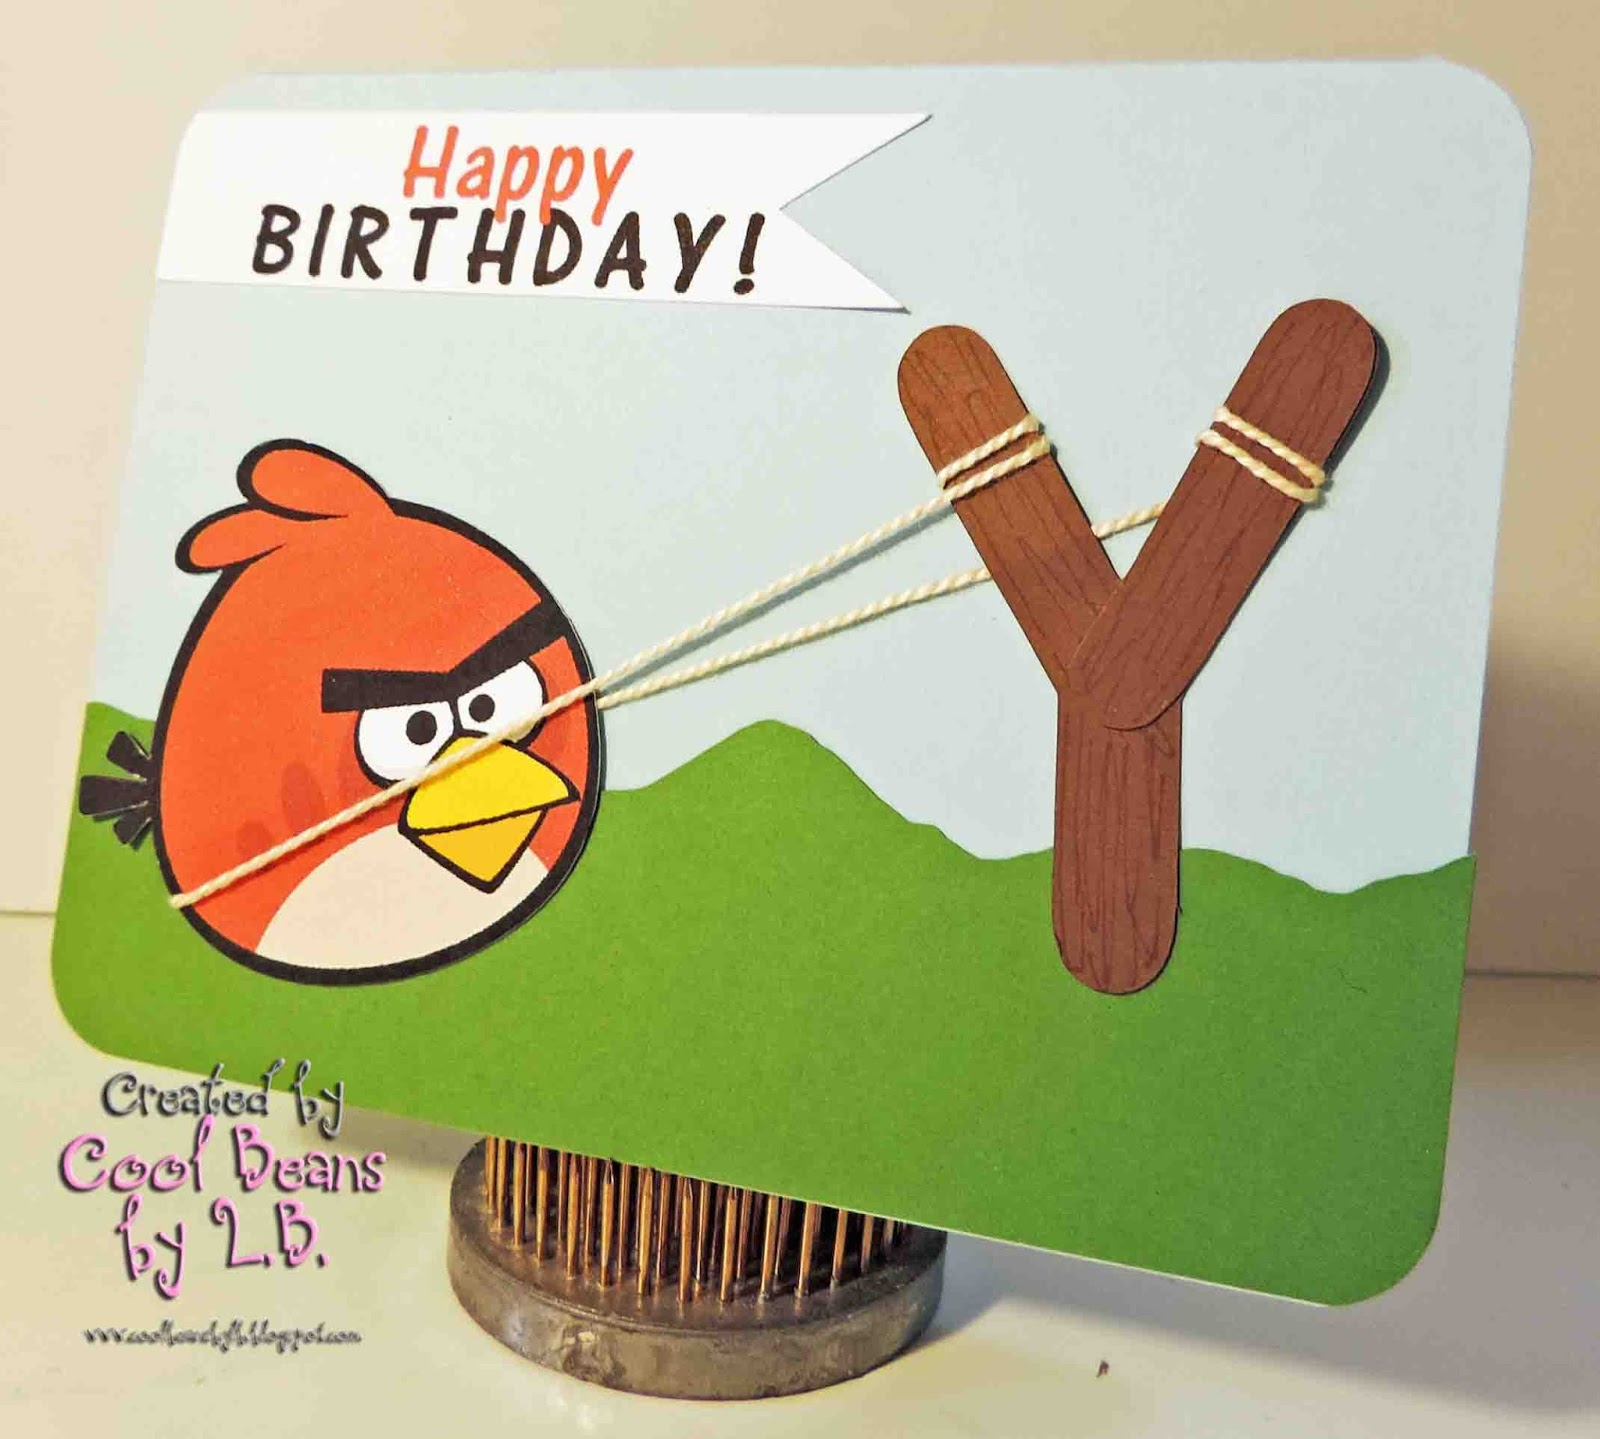 Cool Beans By L.B.: Angry Bird Happy Birthday